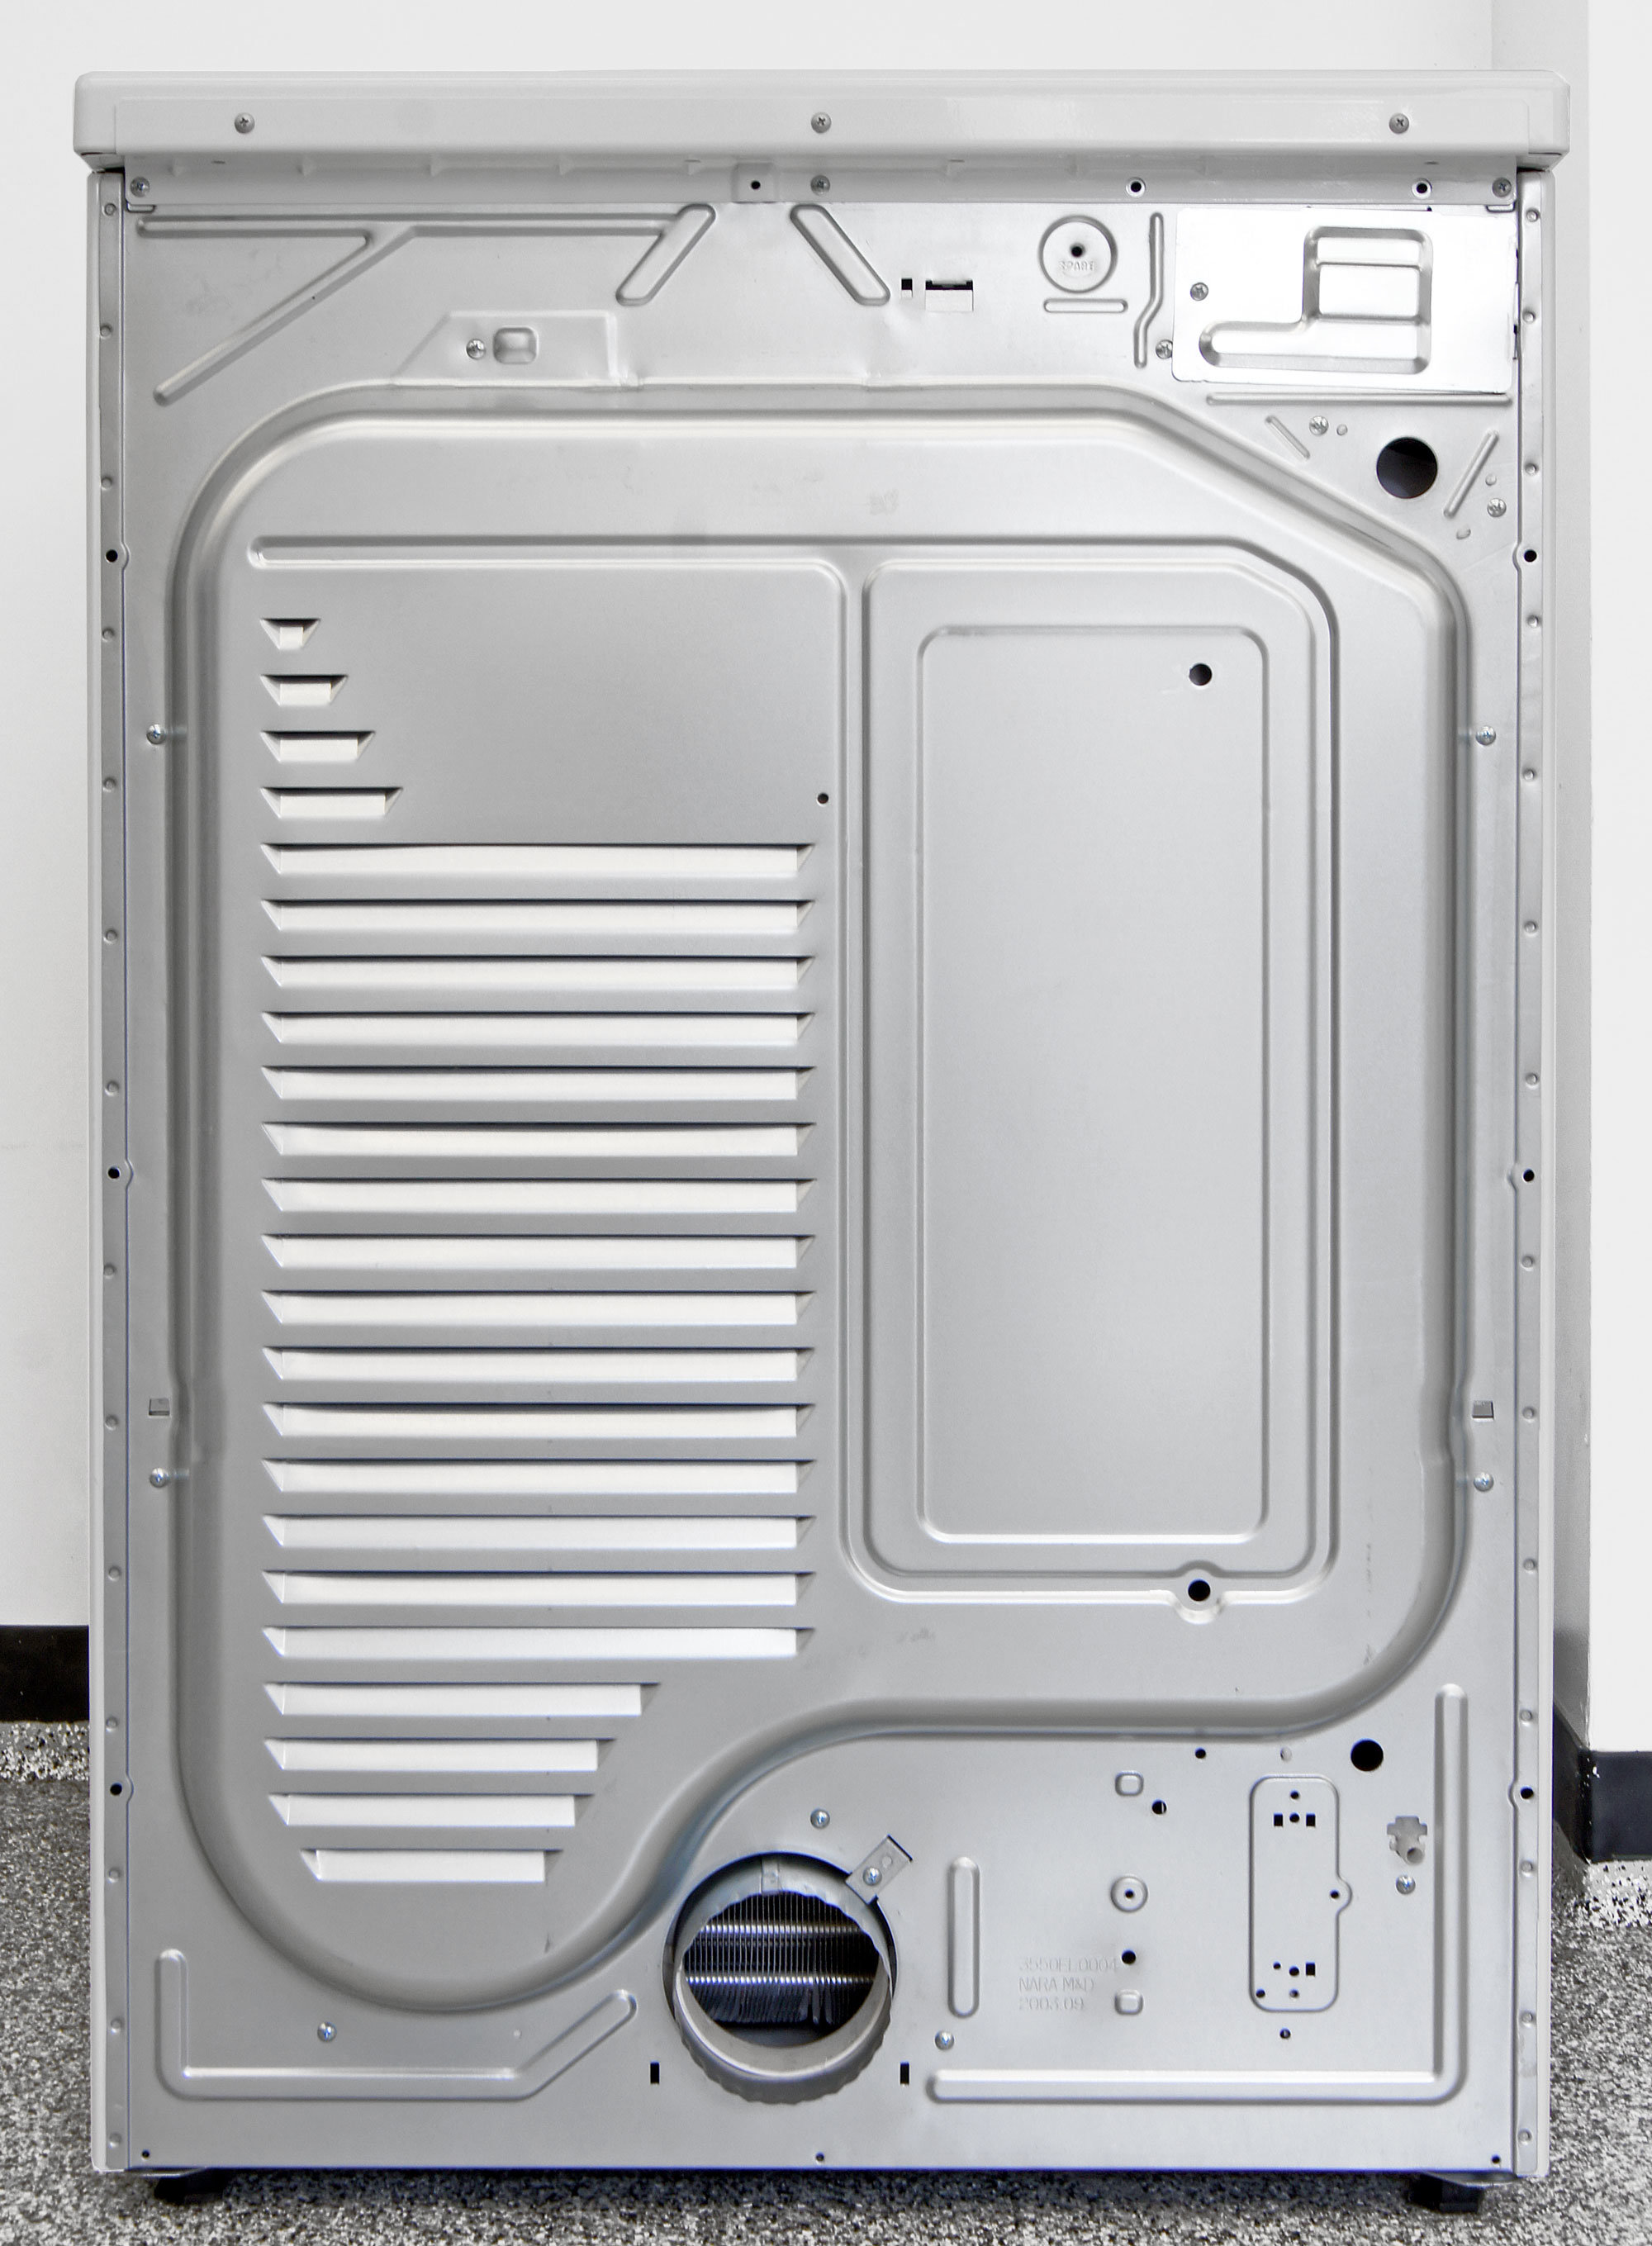 You hook it up using a traditional vent, as well as a small water output for when the heat pump is active.